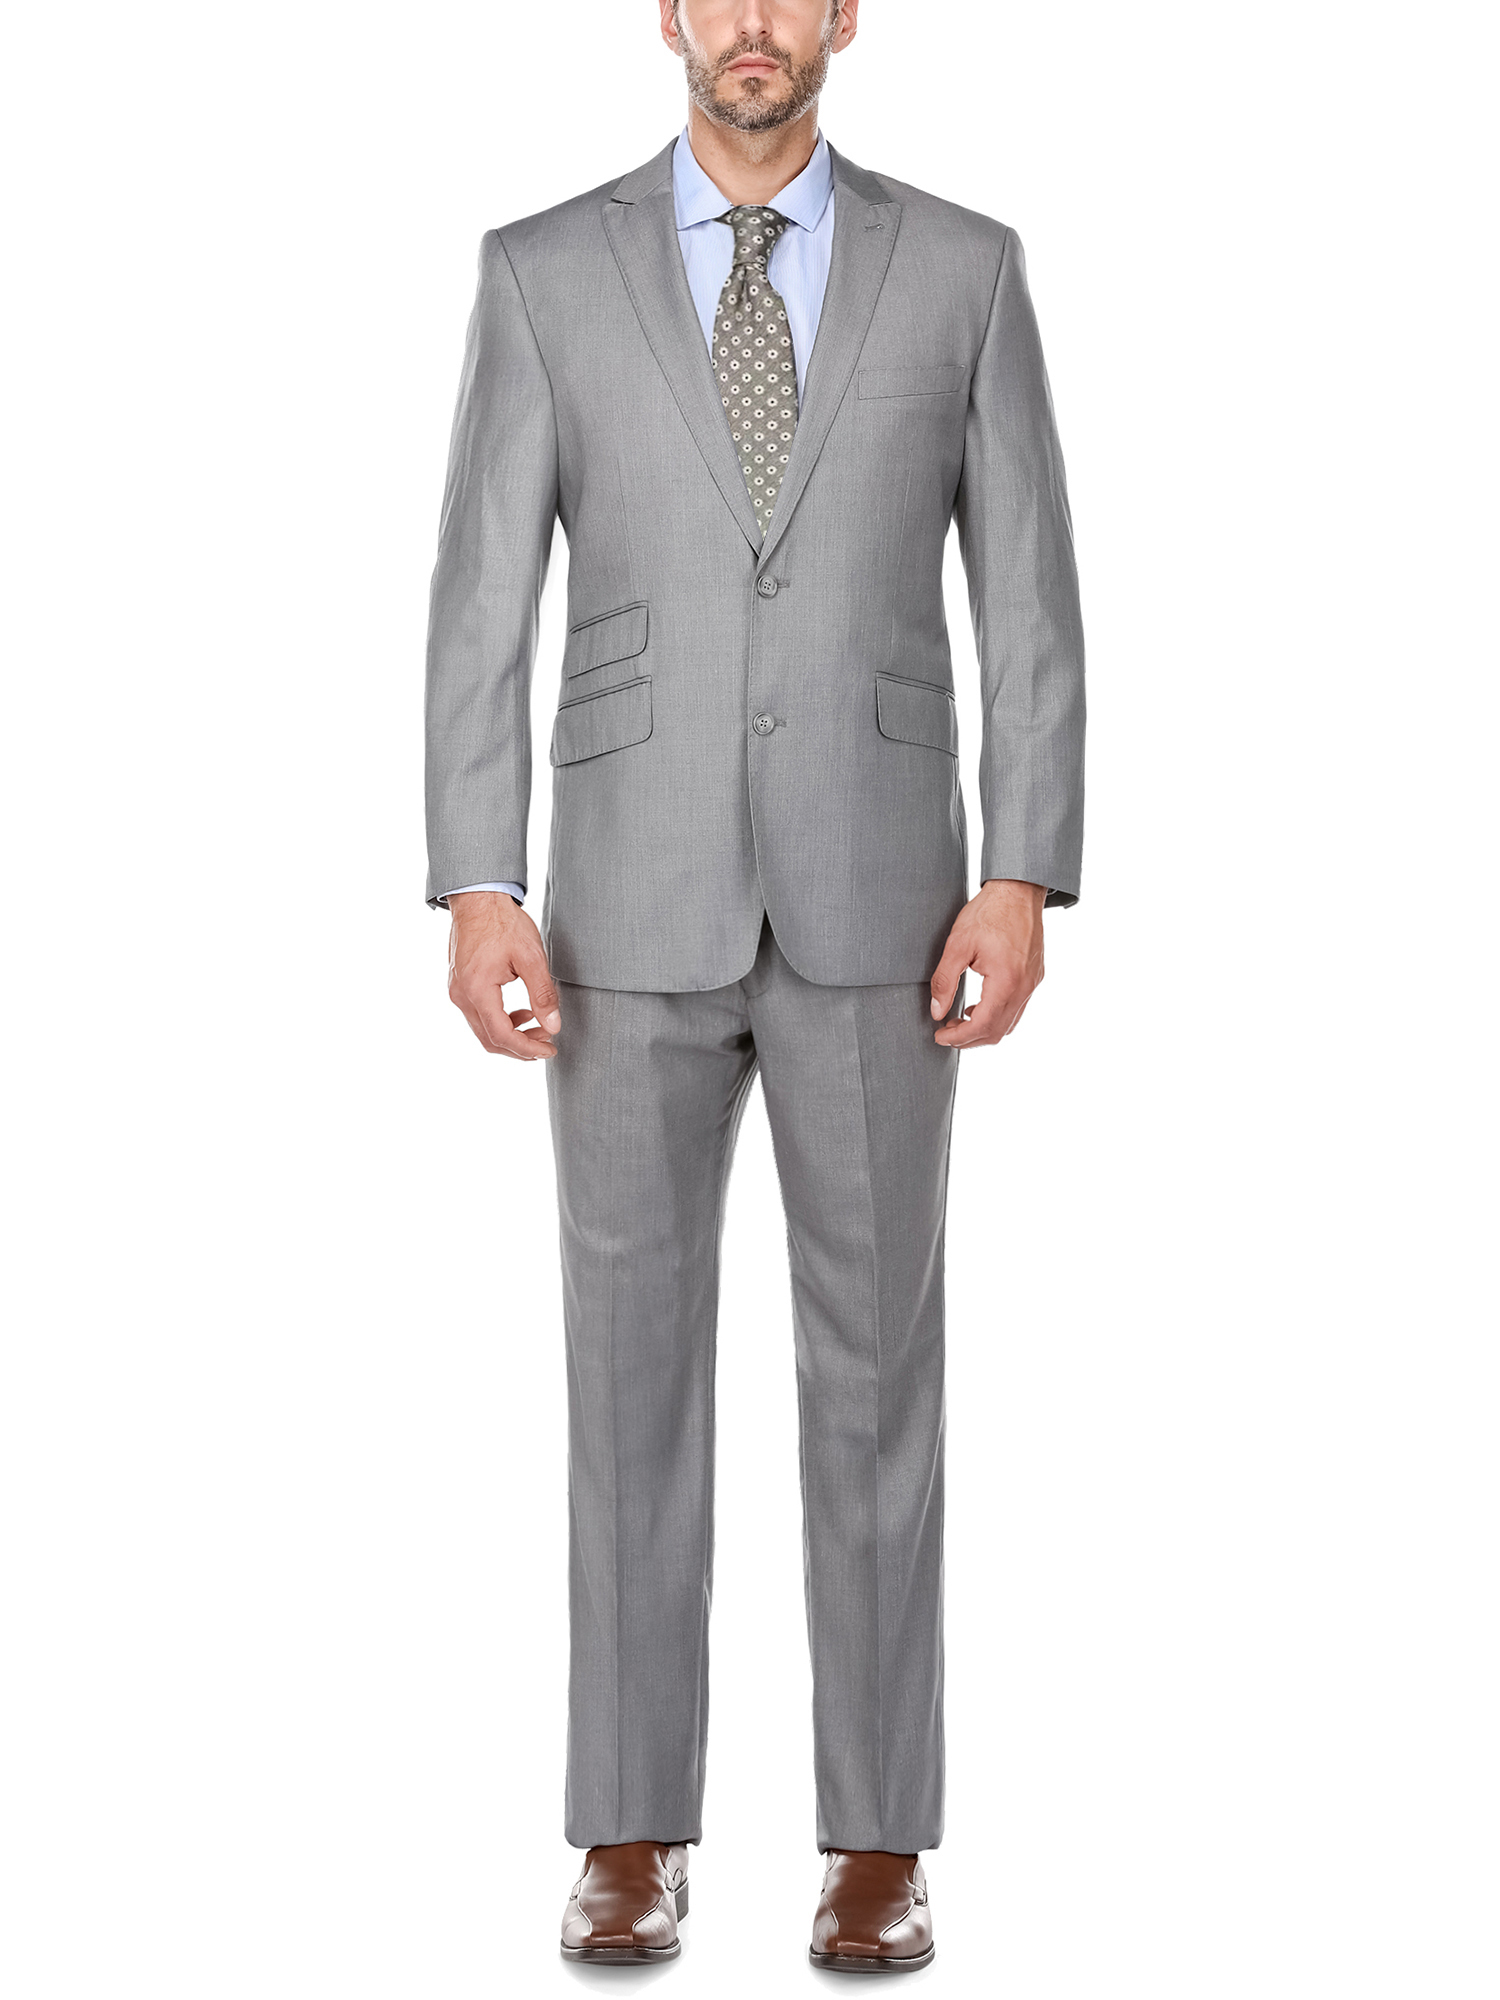 Men' s Charcoal Grey Peak Lapel Classic Fit Two Piece Suit